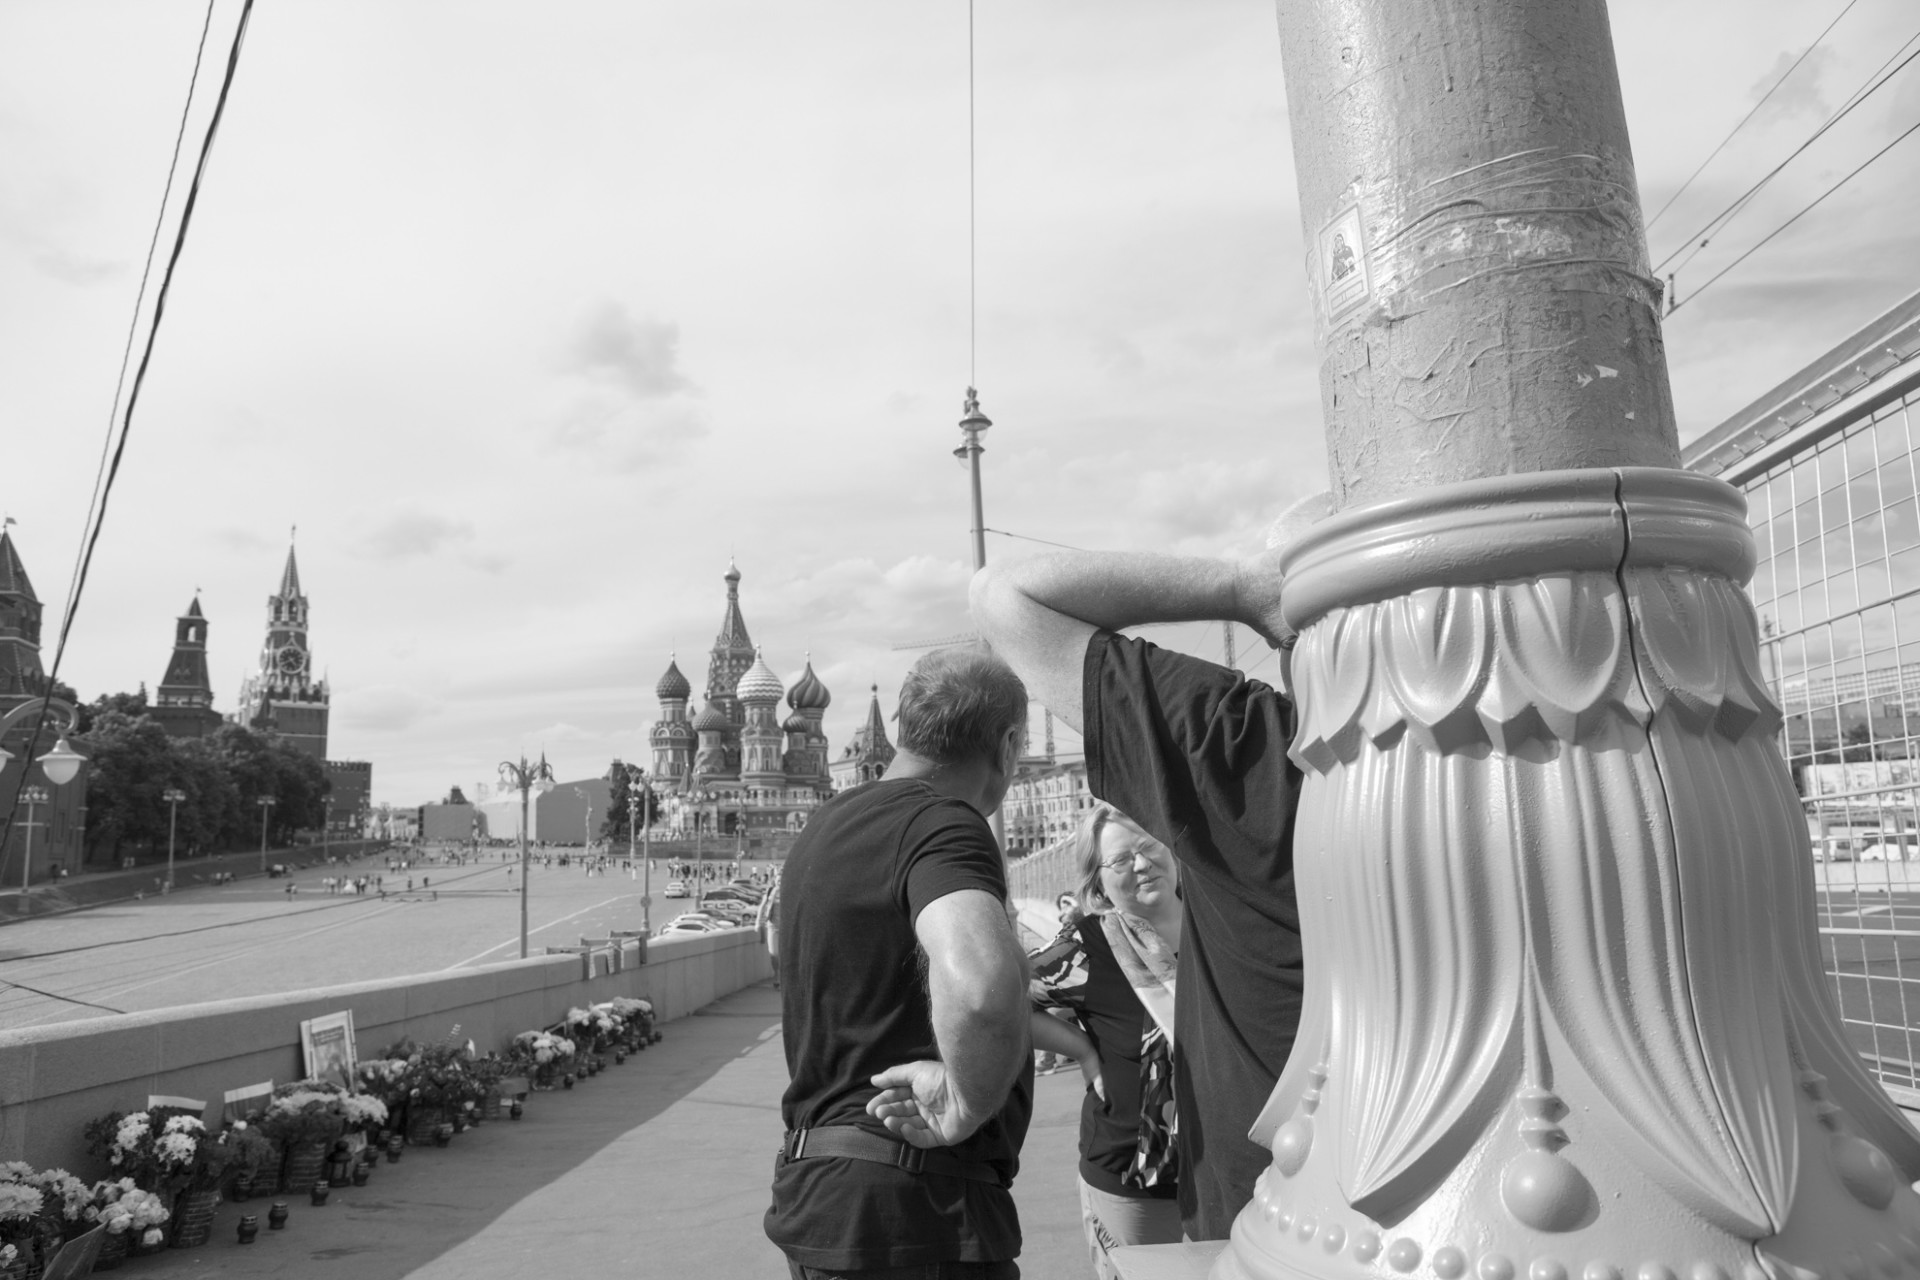 moscow-027